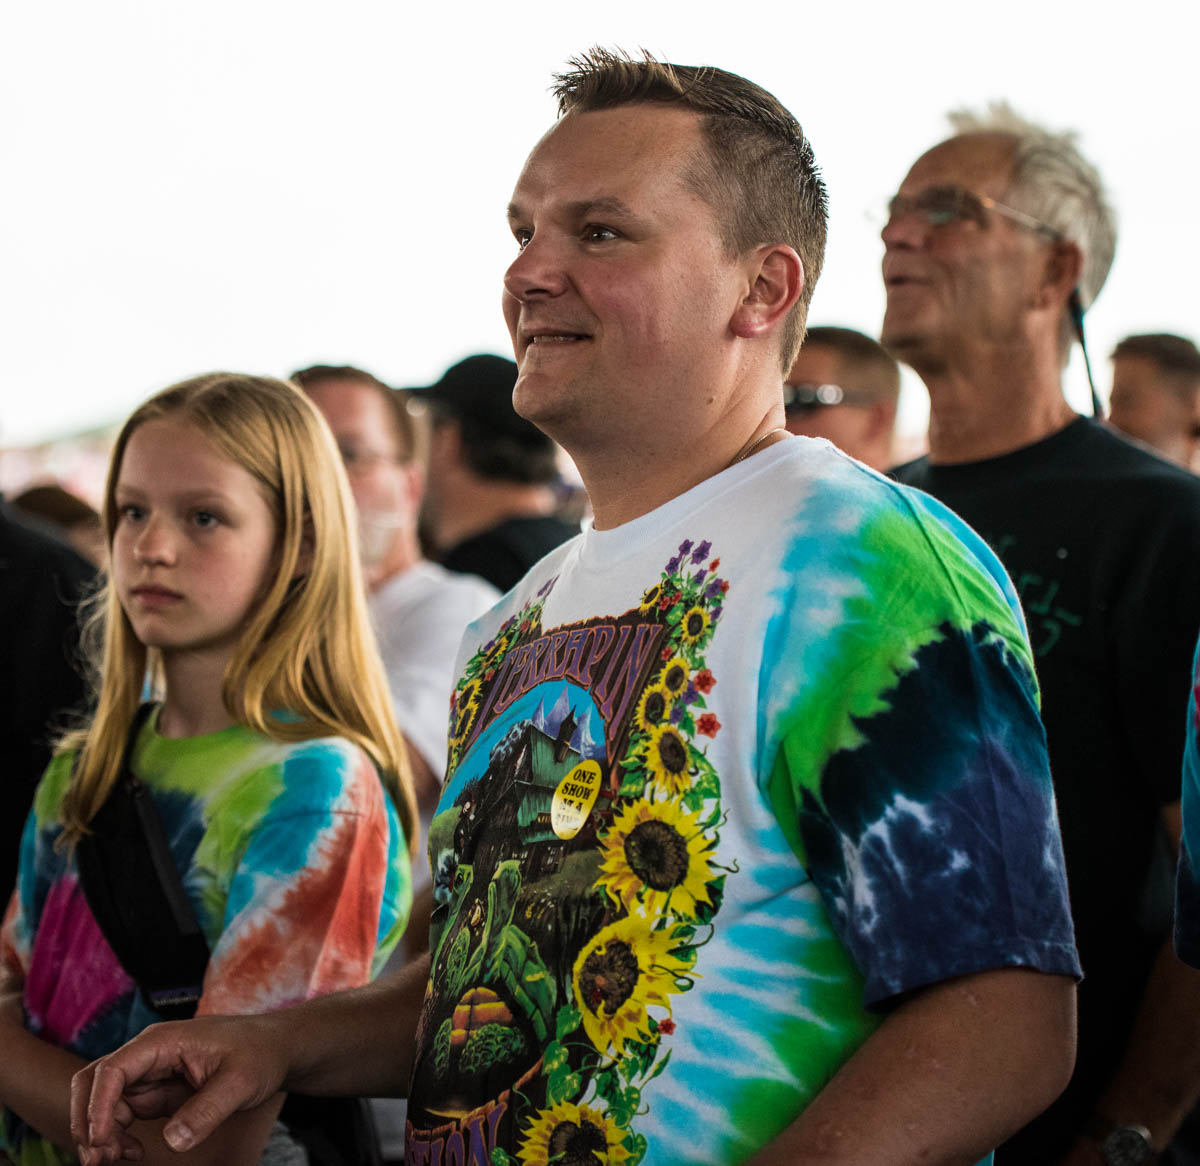 So fun seeing so many families pass their love of Dead & Co. down to the next generation!